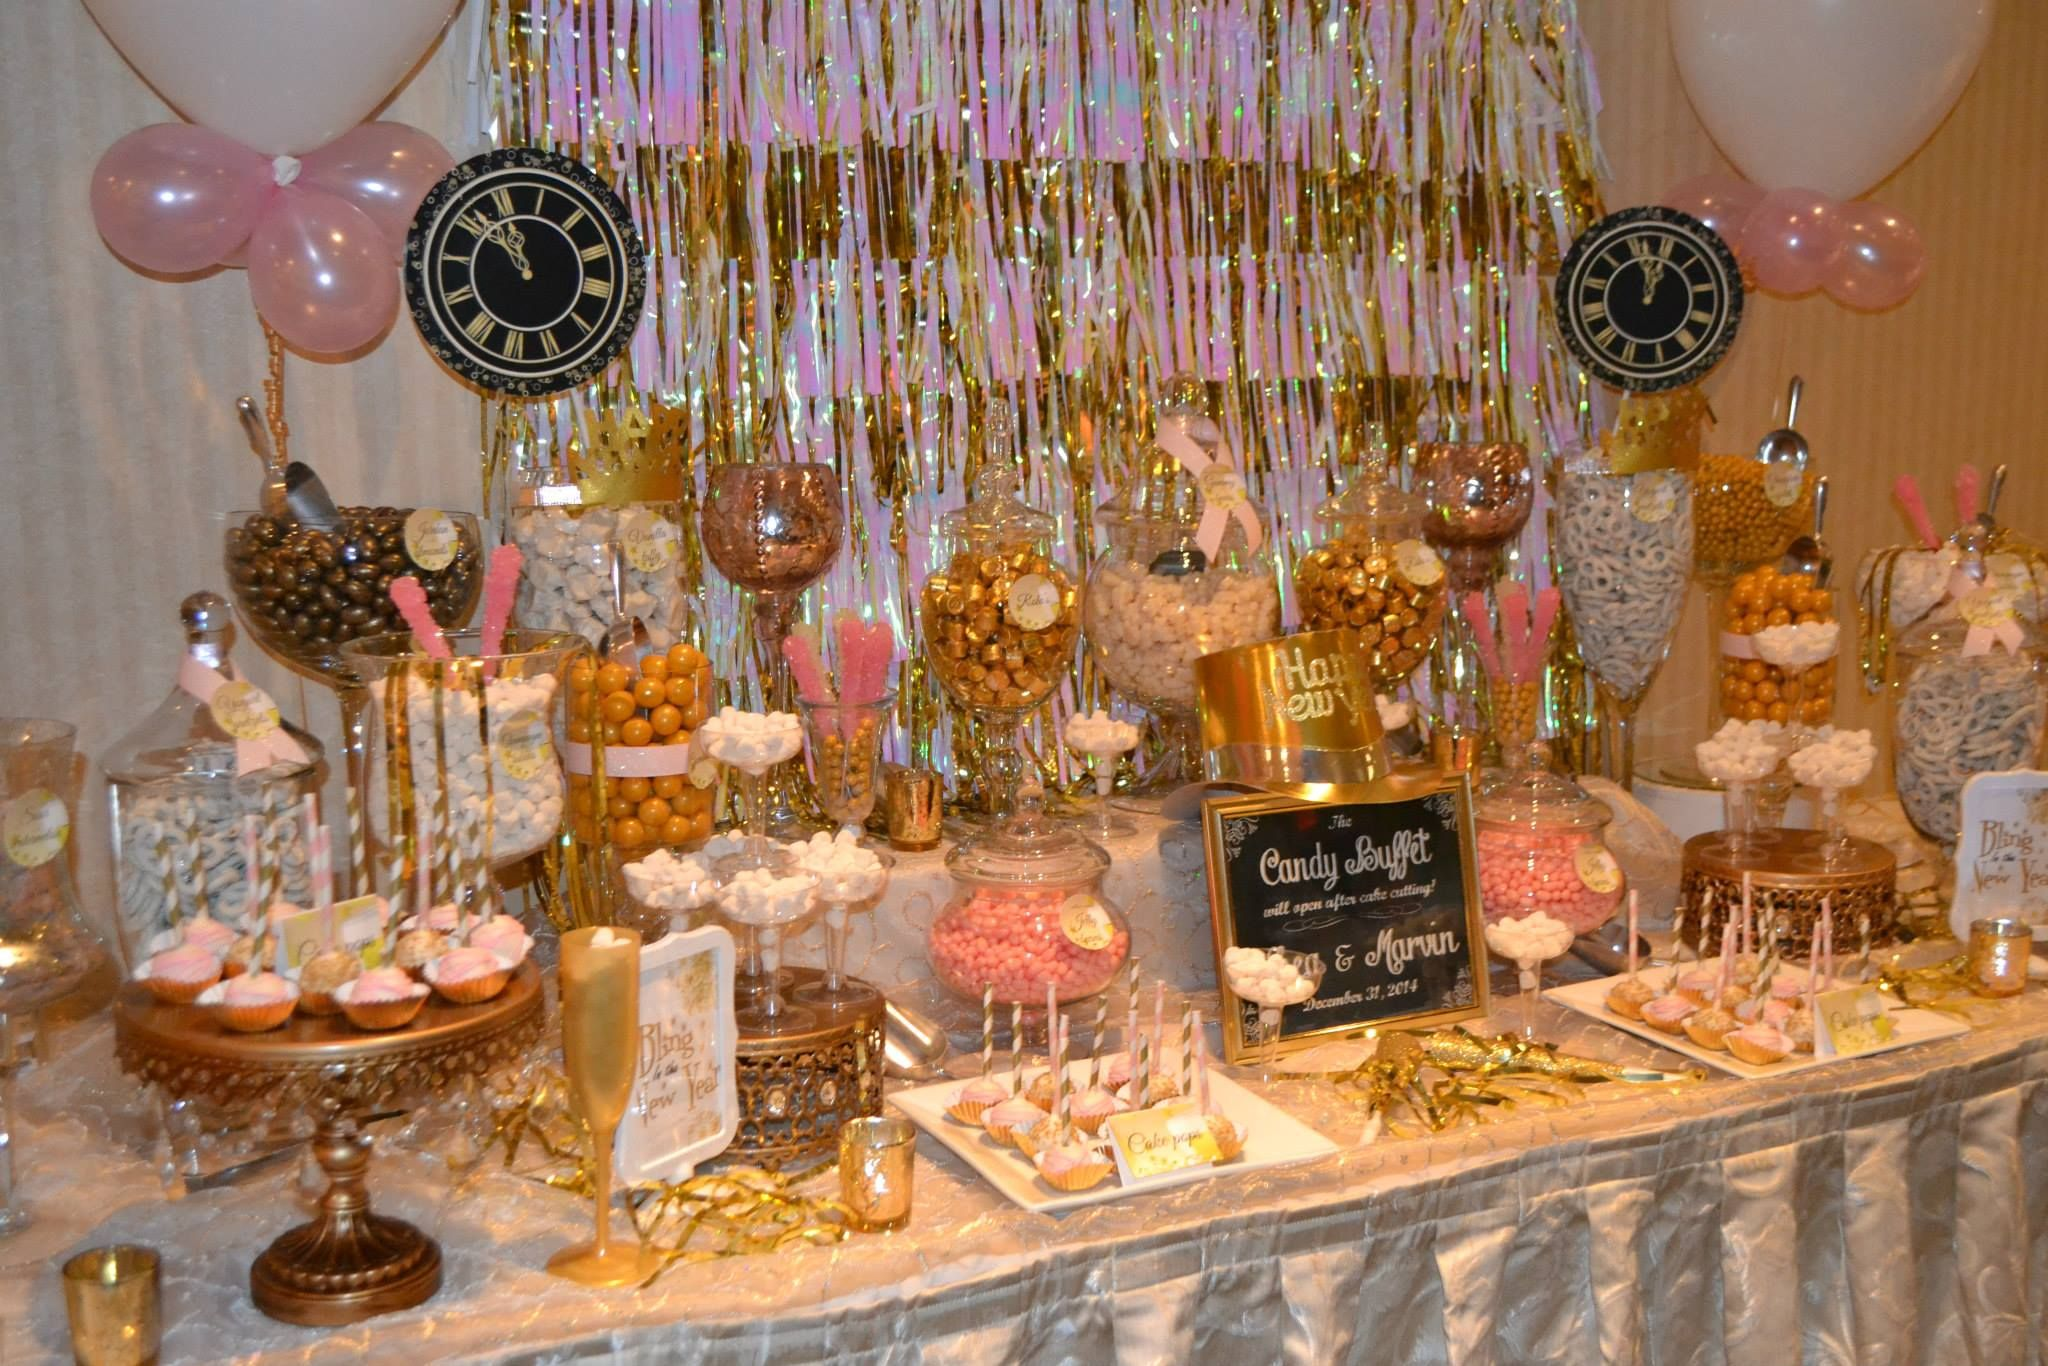 New Years Eve pink and gold candy buffet | Candy buffet baby shower, Candy buffet wedding, Candy buffet